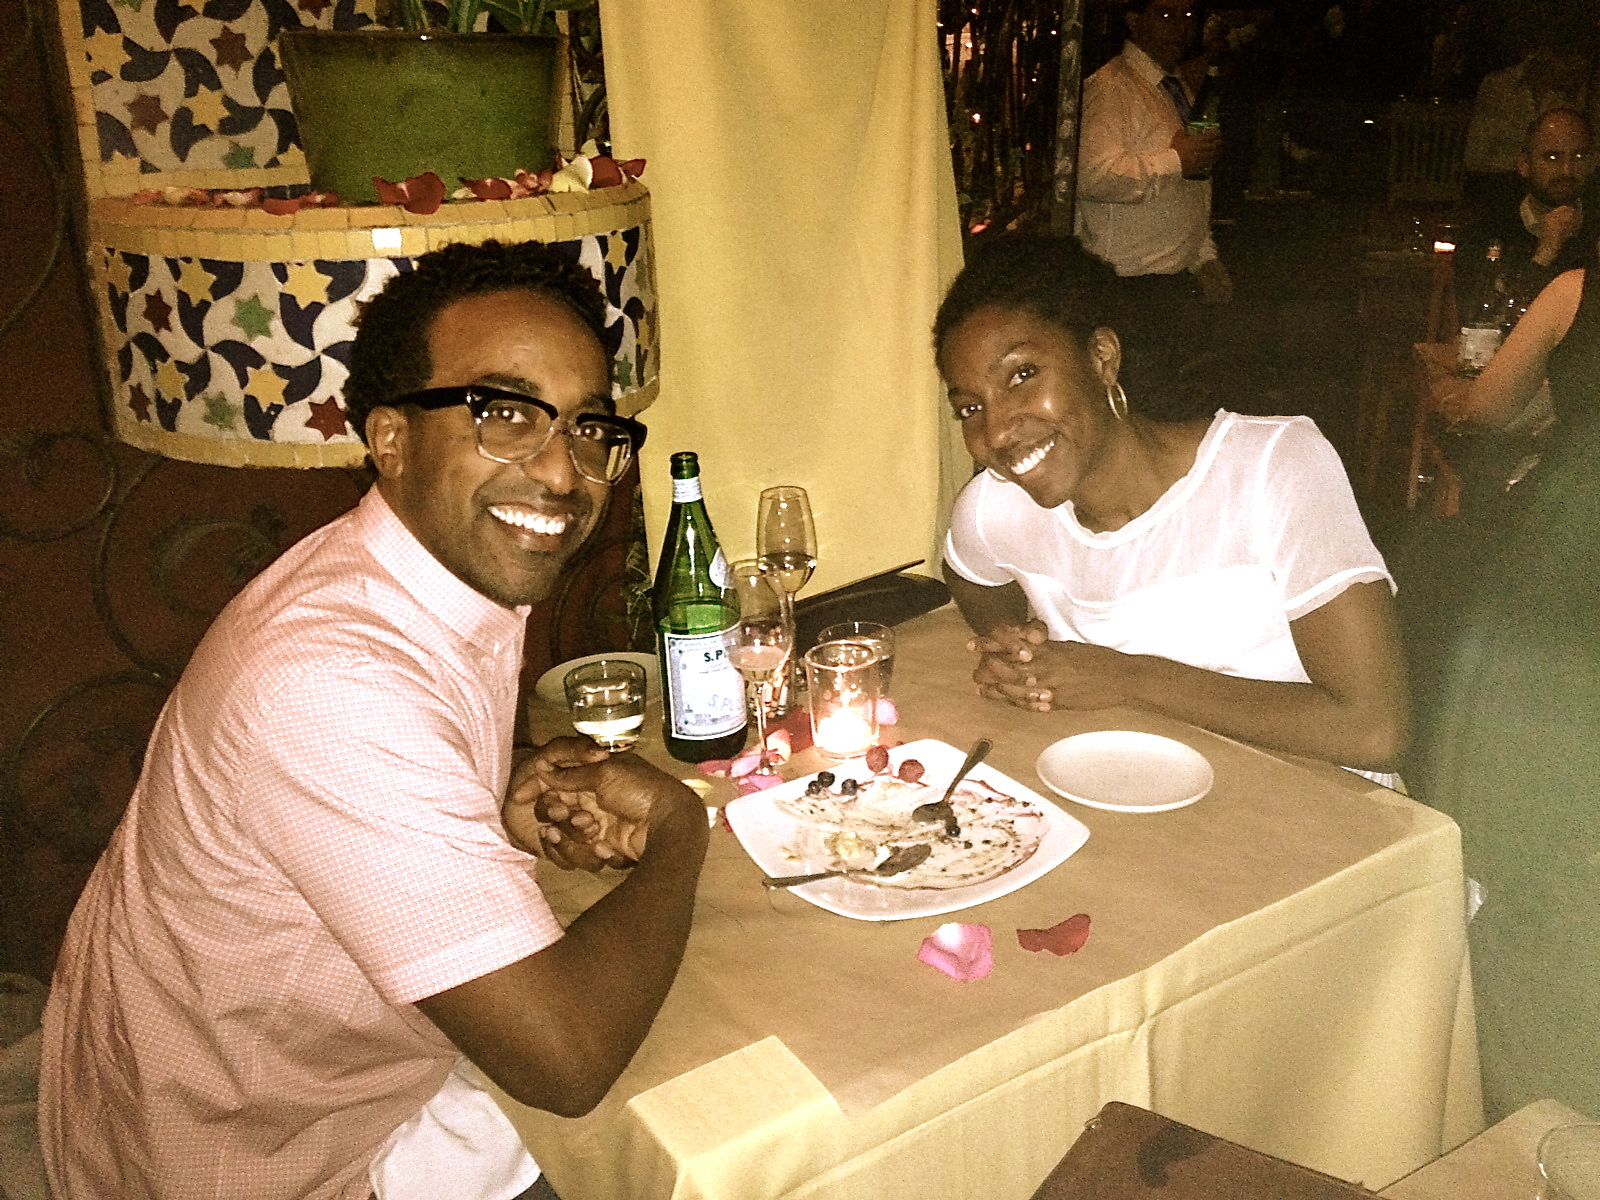 Eating fun food with the hubby.Yes, my husband looks like a male Ethiopian version of me. Don't worry, we're not related :)